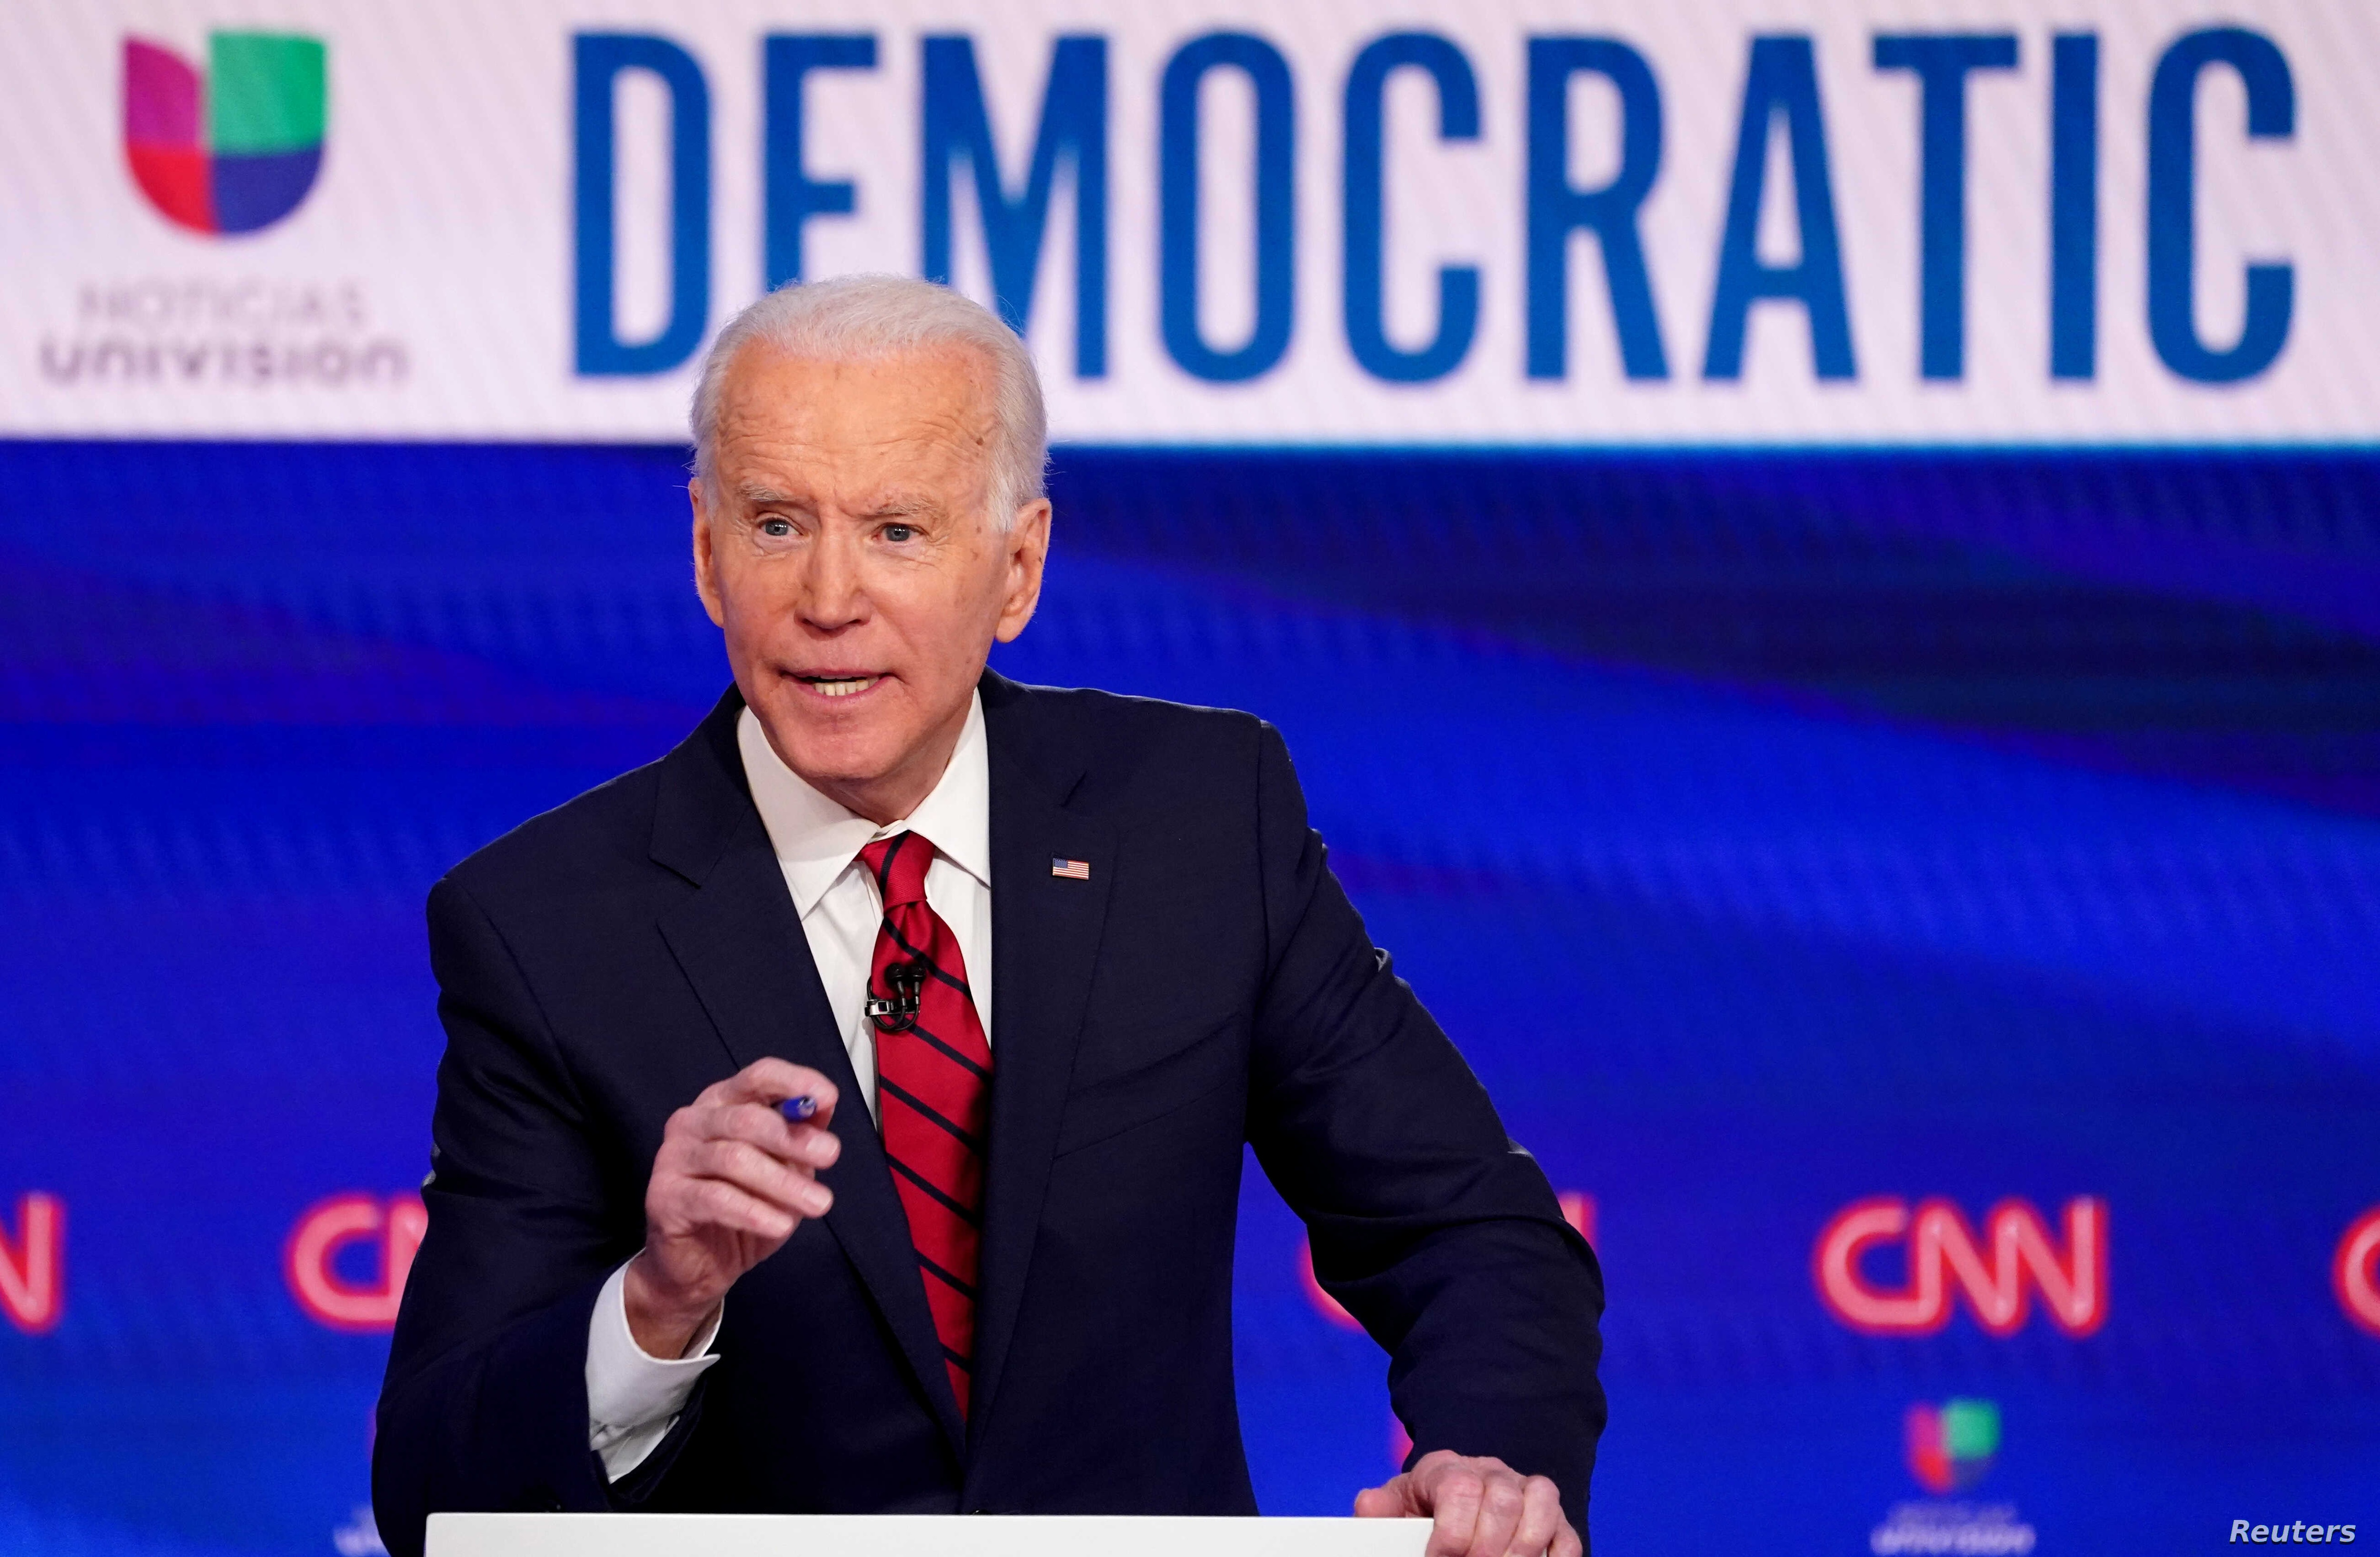 Biden Pressed To Choose A Black Woman As Running Mate Voice Of America English